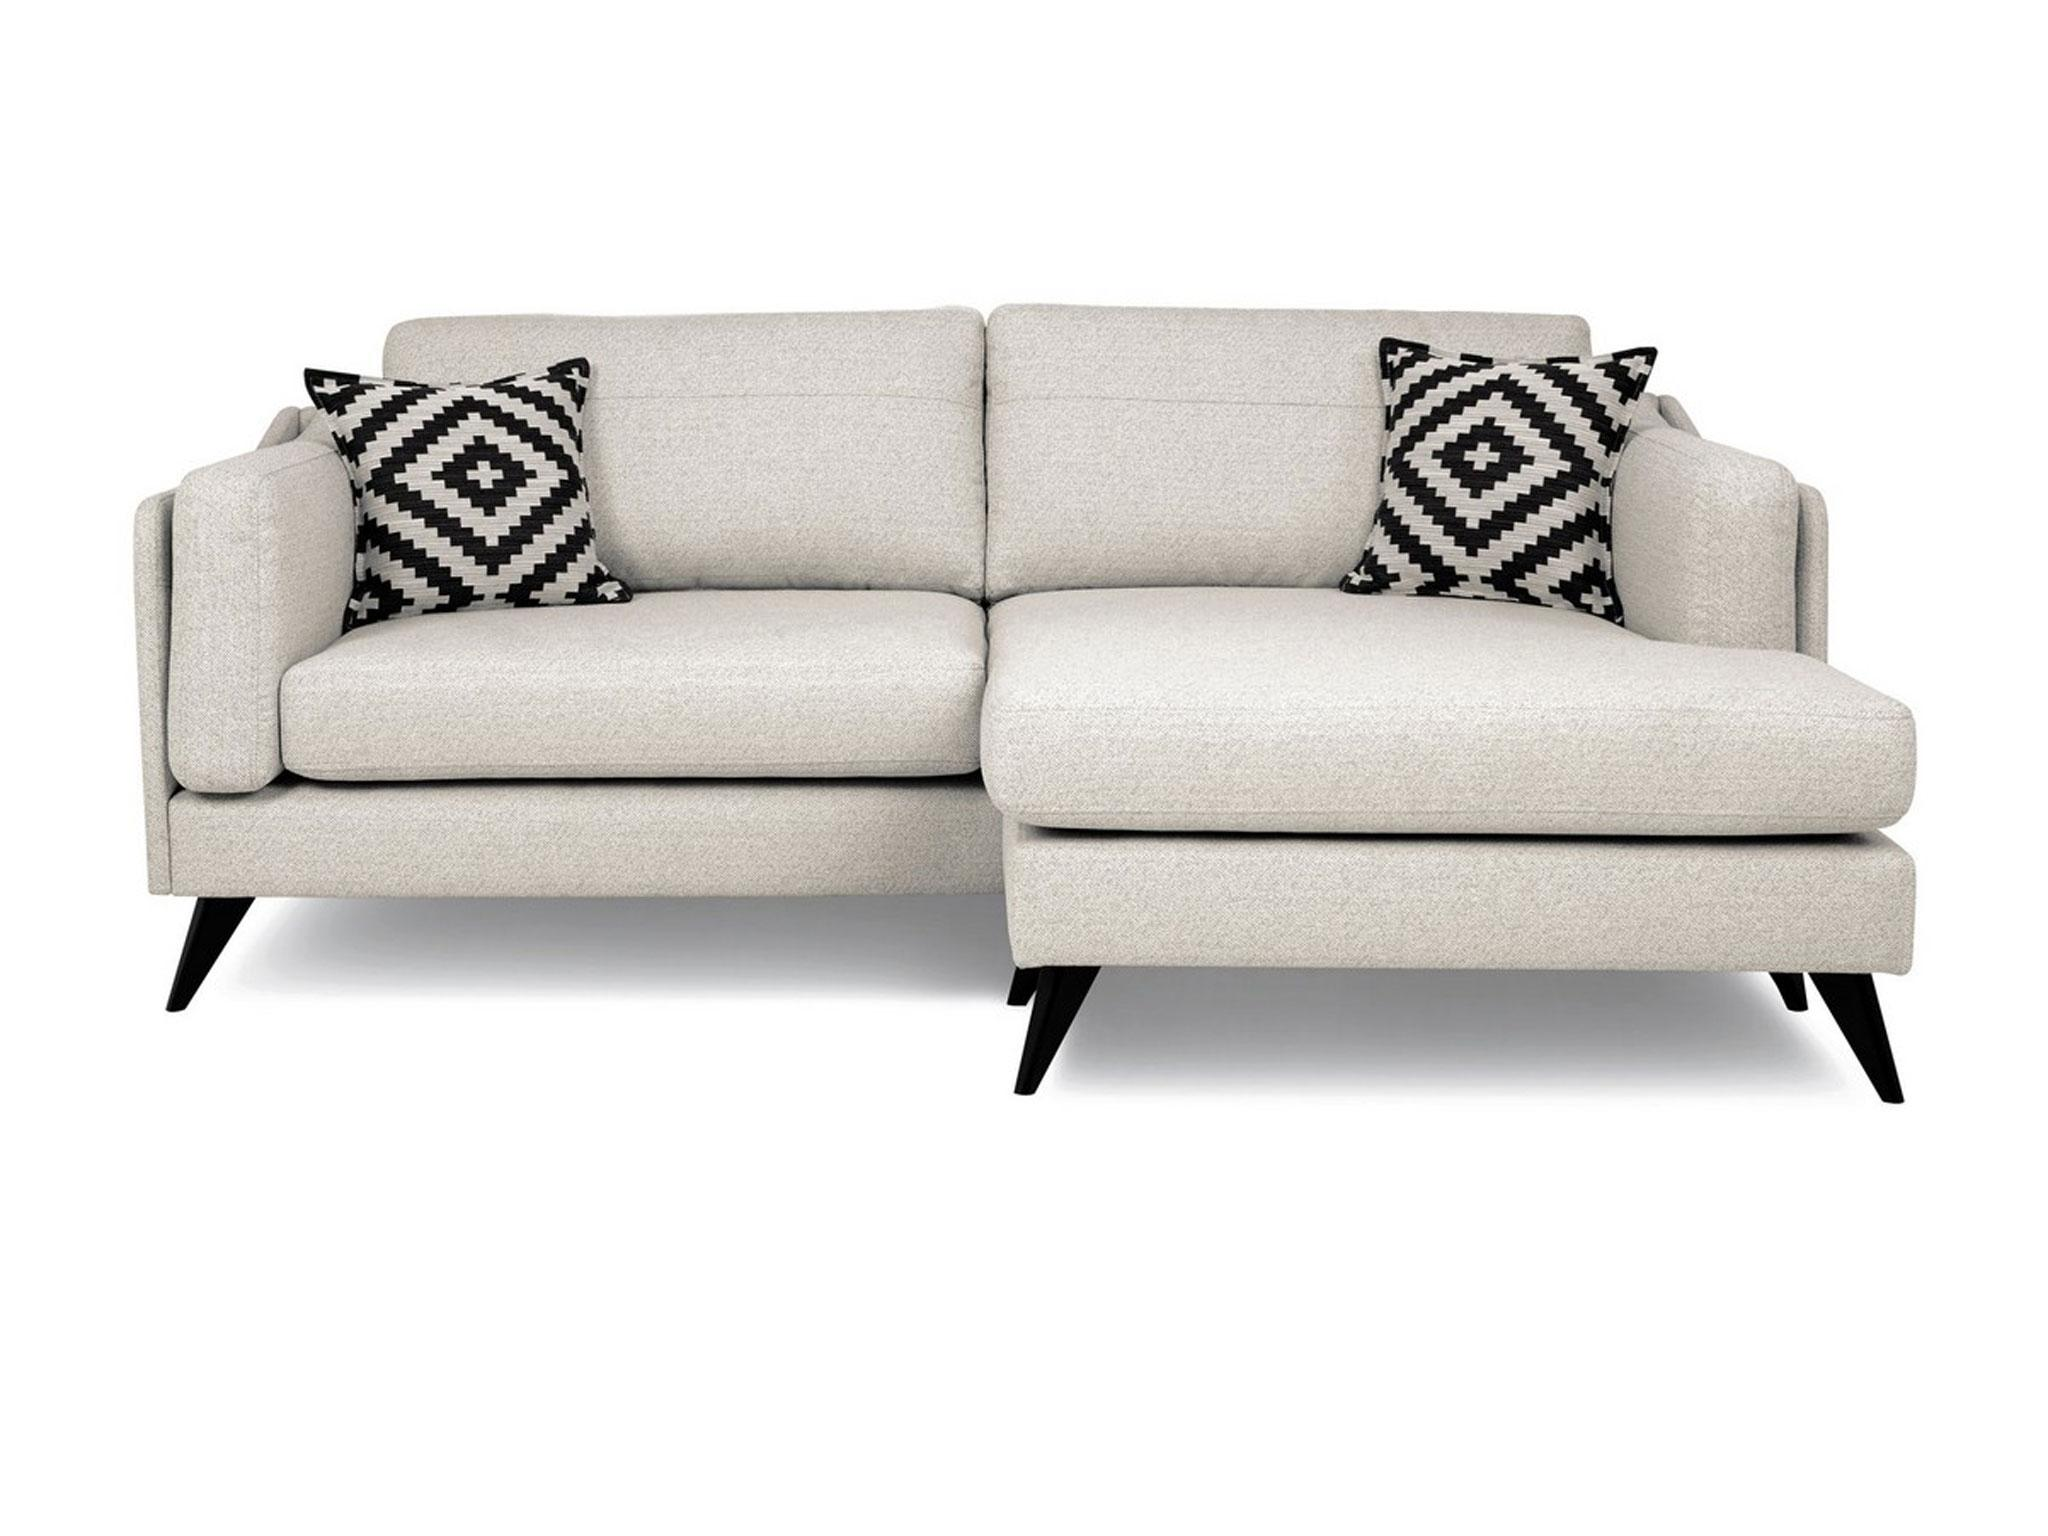 11 best corner sofas | The Independent John Lewis Chaise Longue Second Hand on chaise sofa sleeper, chaise furniture, chaise recliner chair,